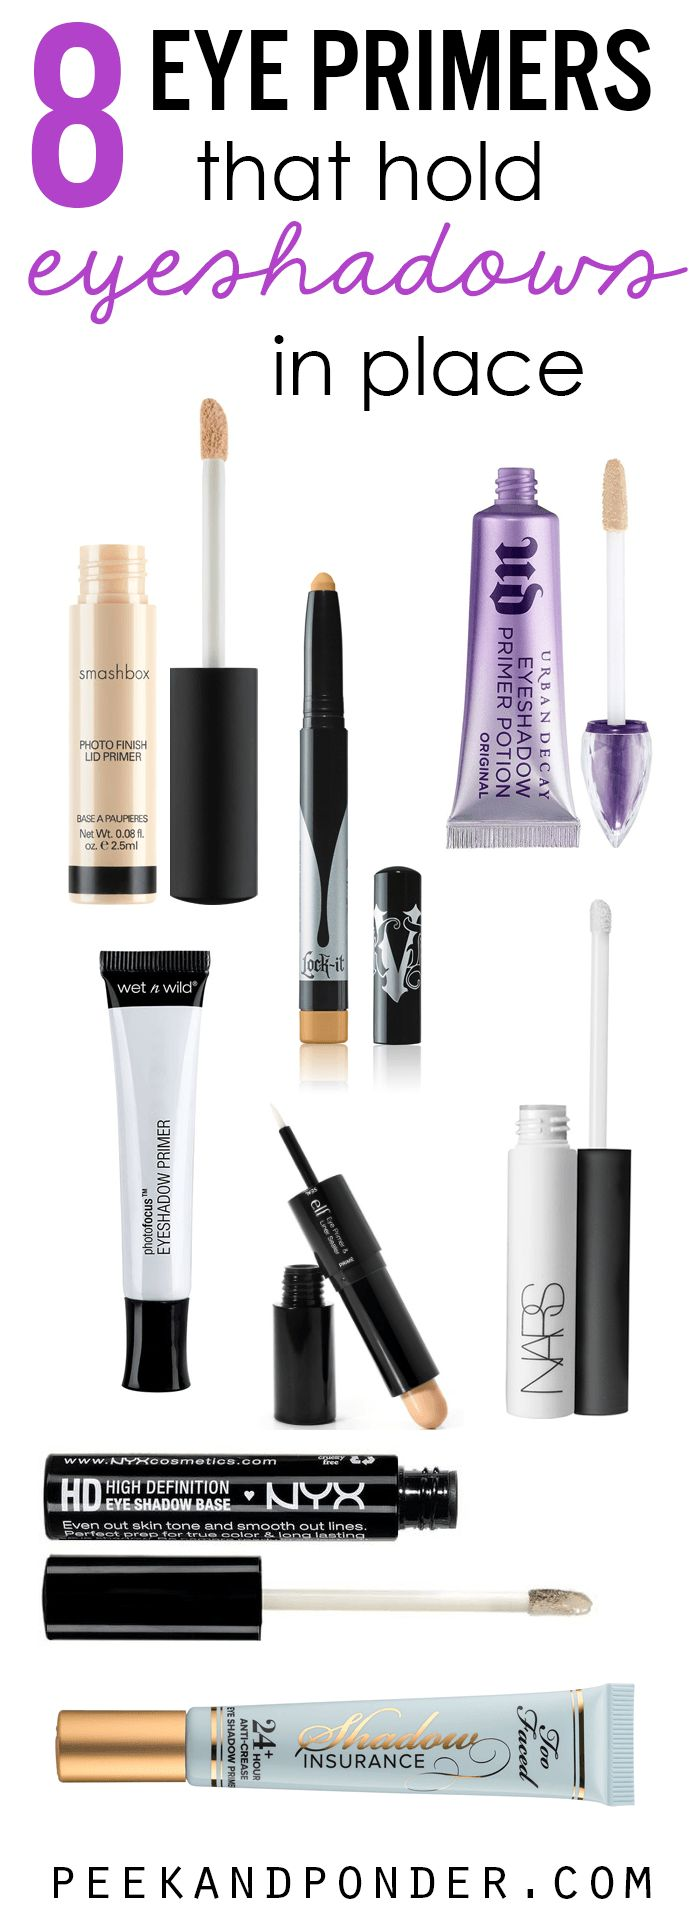 The 8 best eye primers that hold eyeshadows in place along with a free printable list!